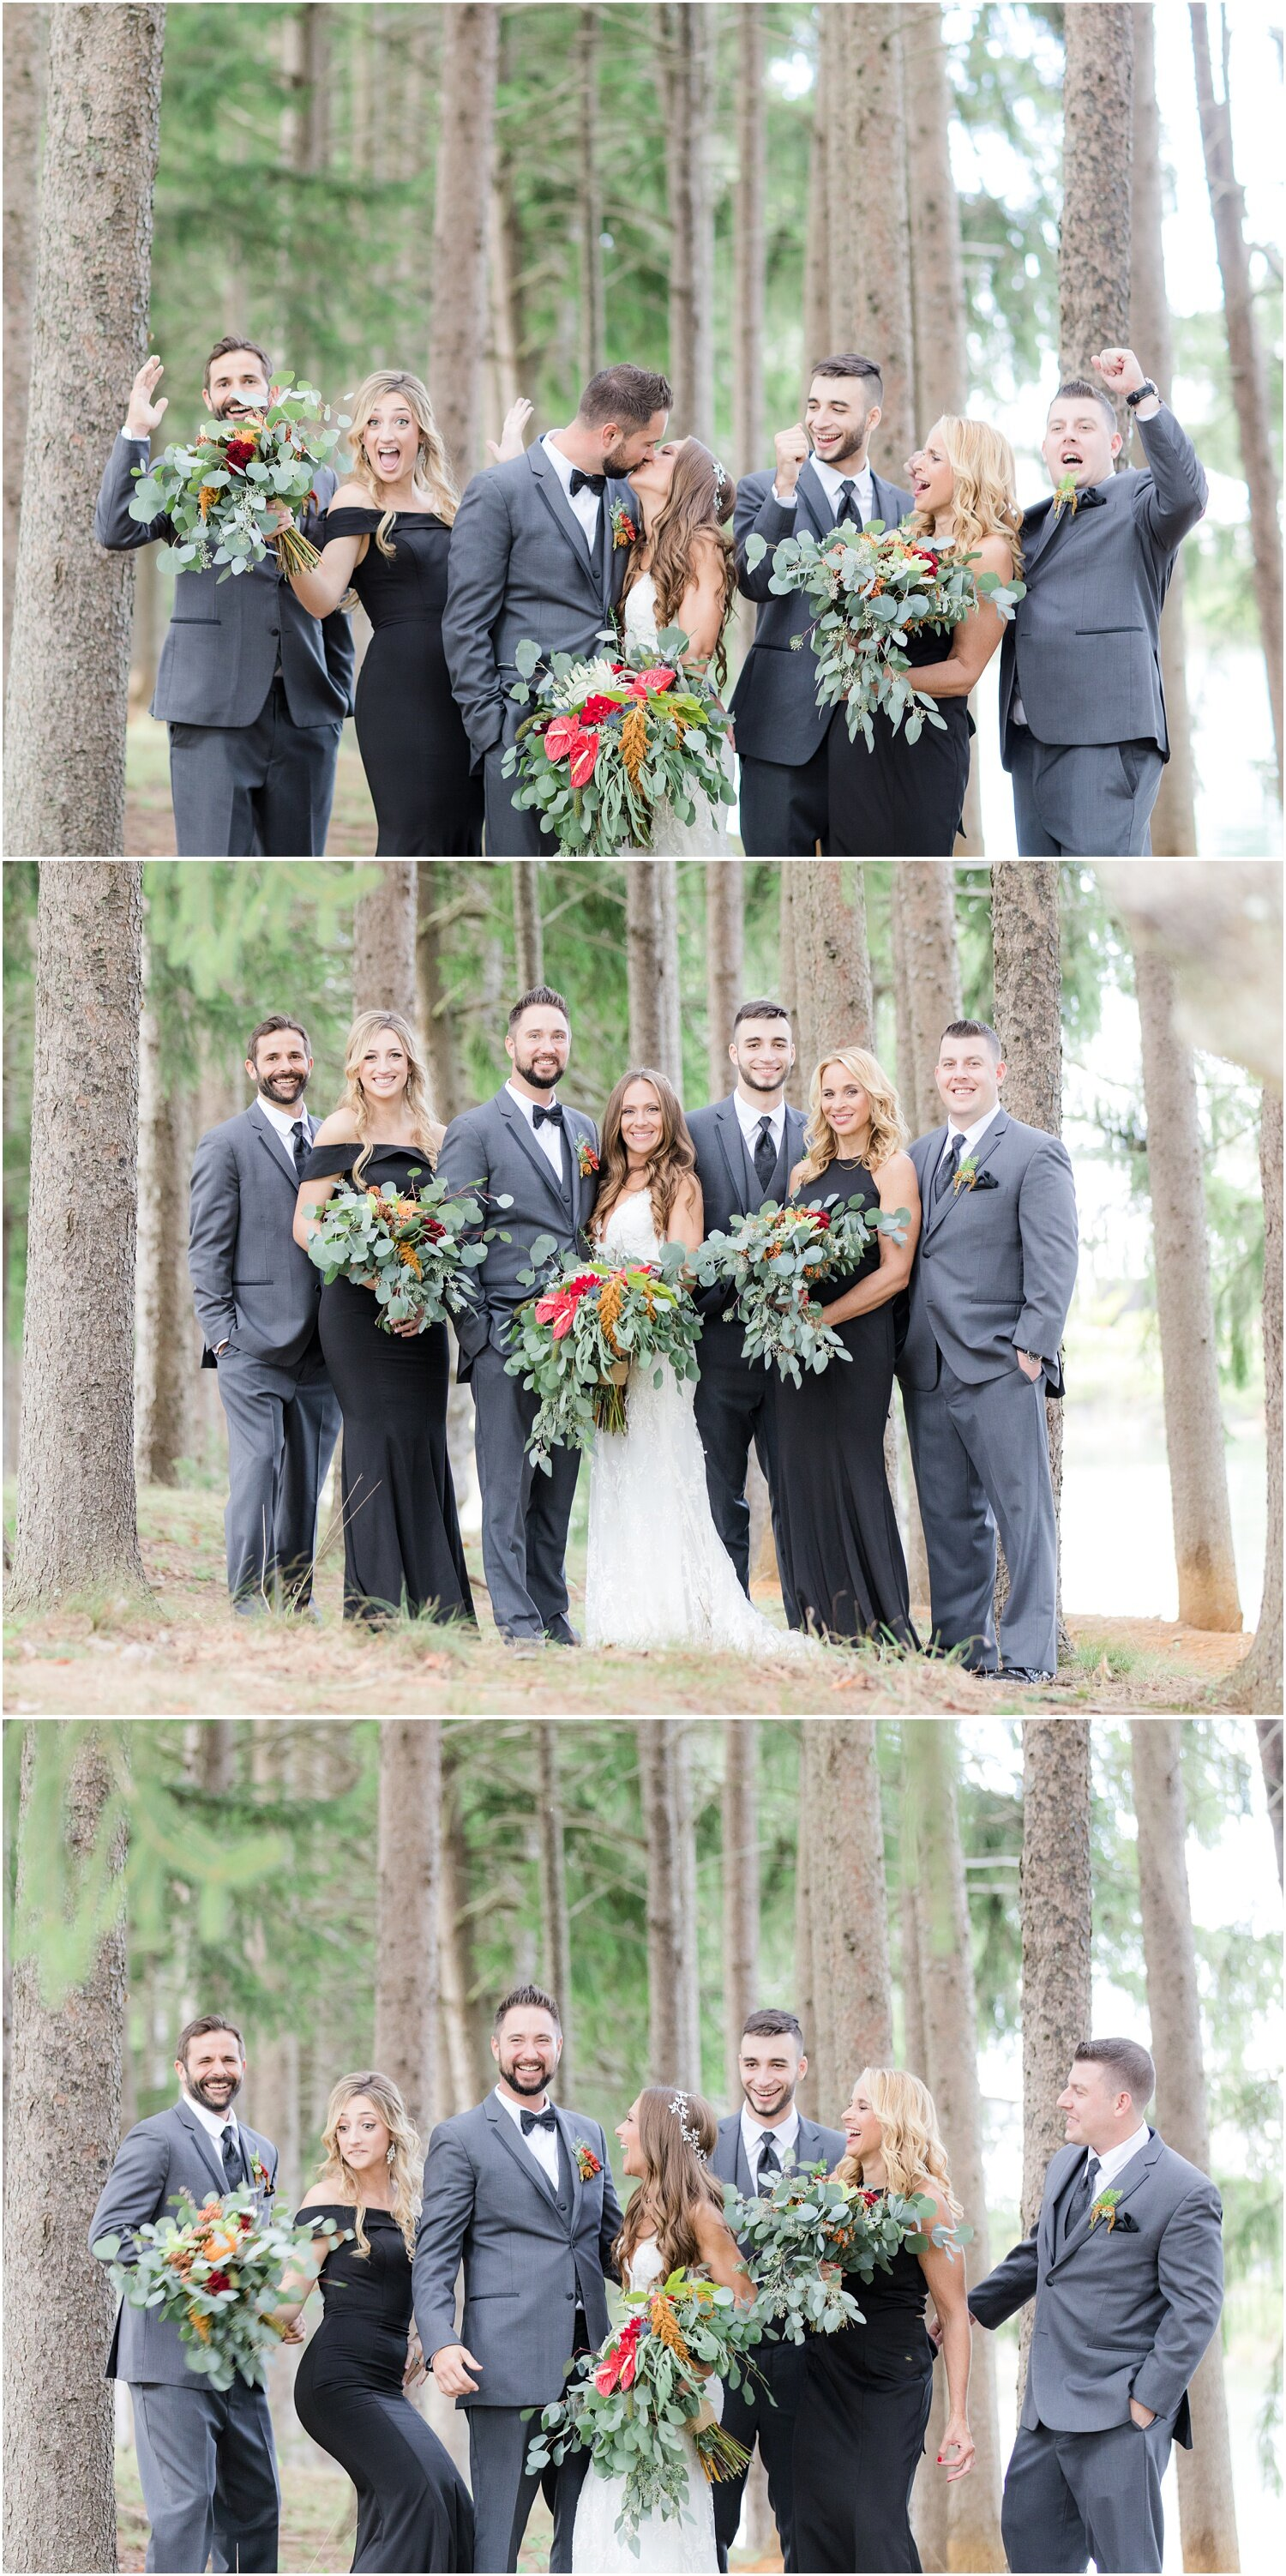 Fun bridal party photos in a forrest setting in Millstone NJ.